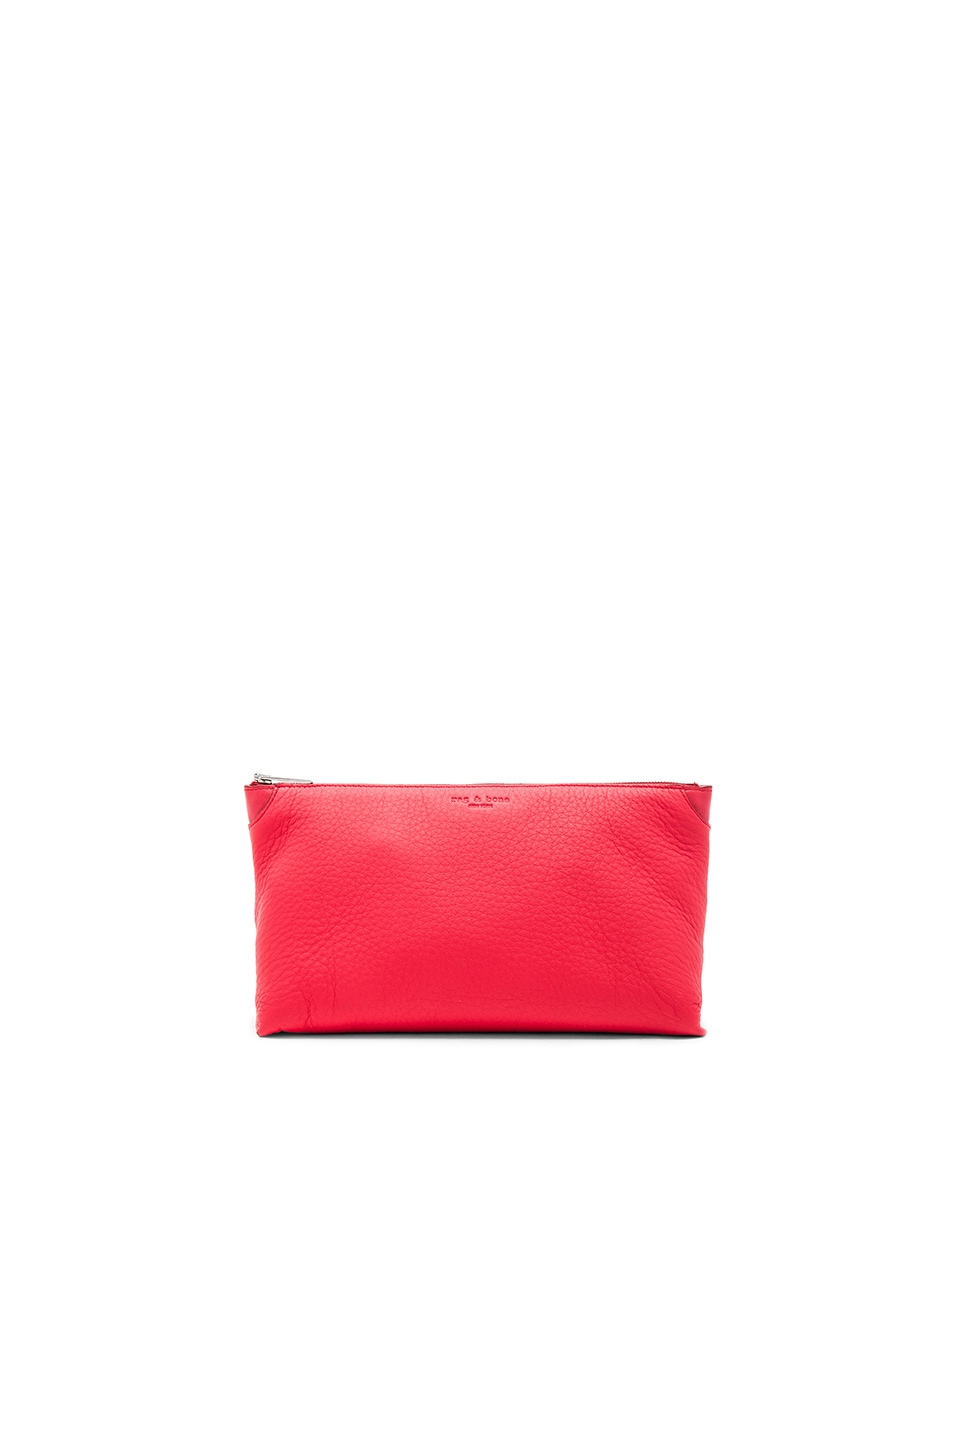 Travel Pouch by Rag & Bone